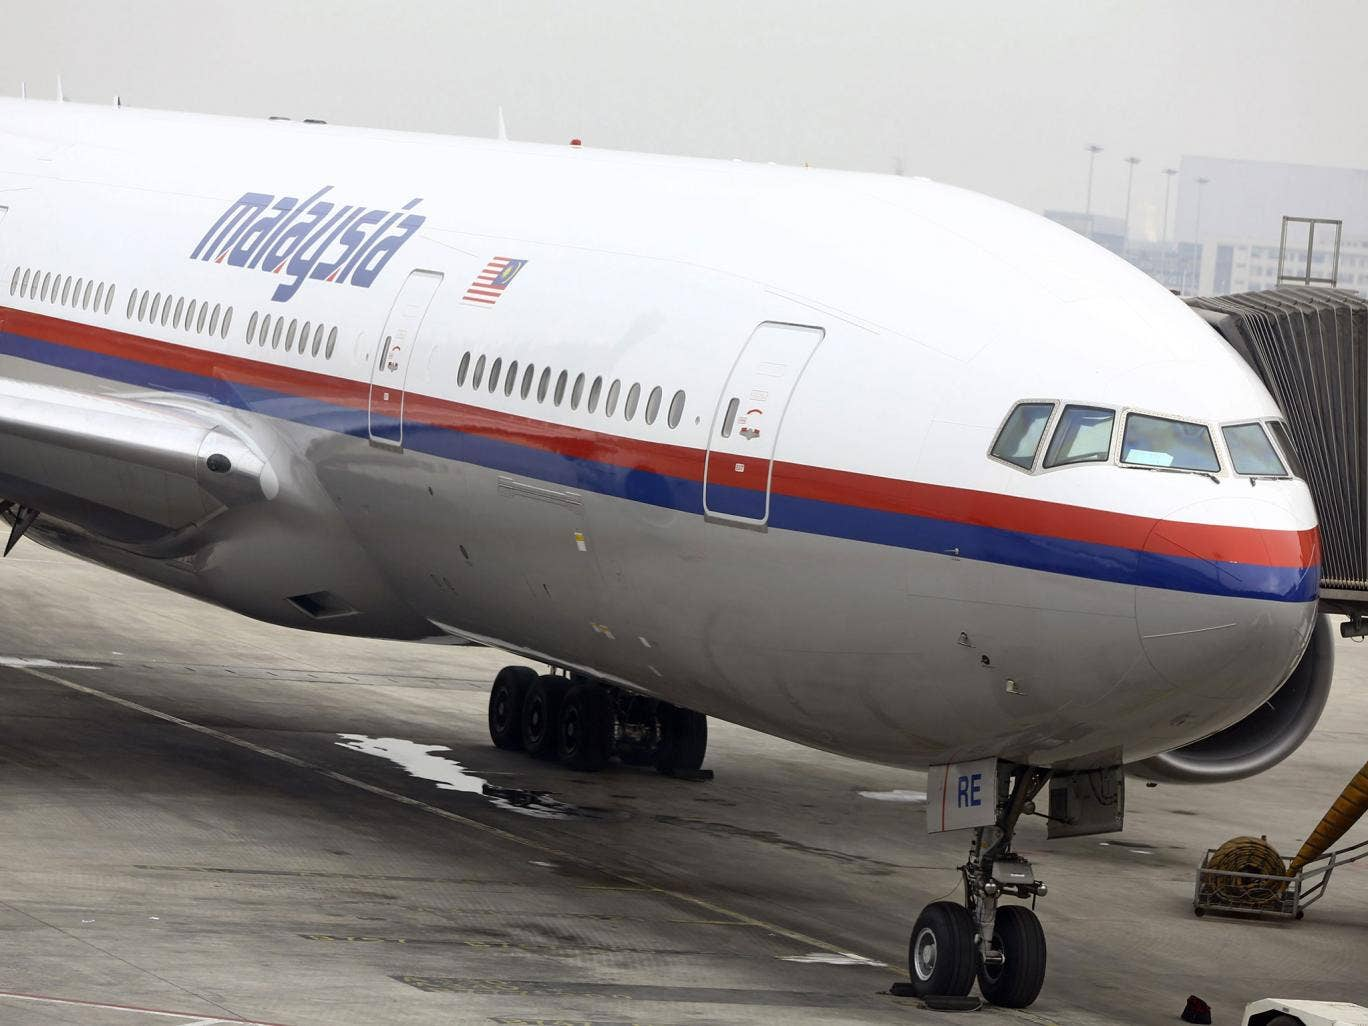 Even before the crash, Malaysia Airlines was a business in crisis